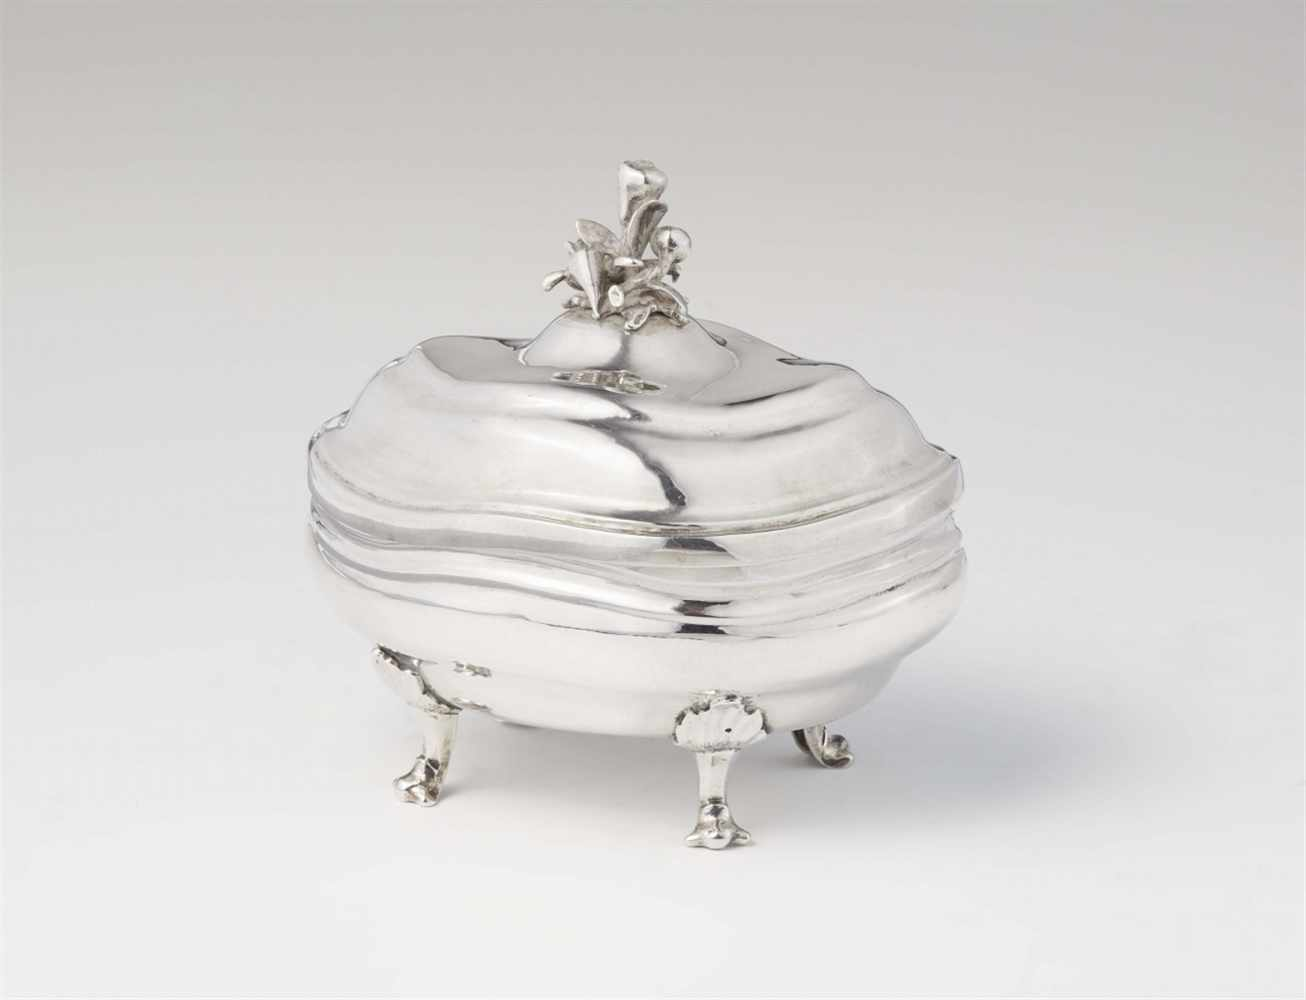 Lot 329 - An Augsburg silver sugar boxInterior gilt bombé form box with twist fluting and domed lid with a